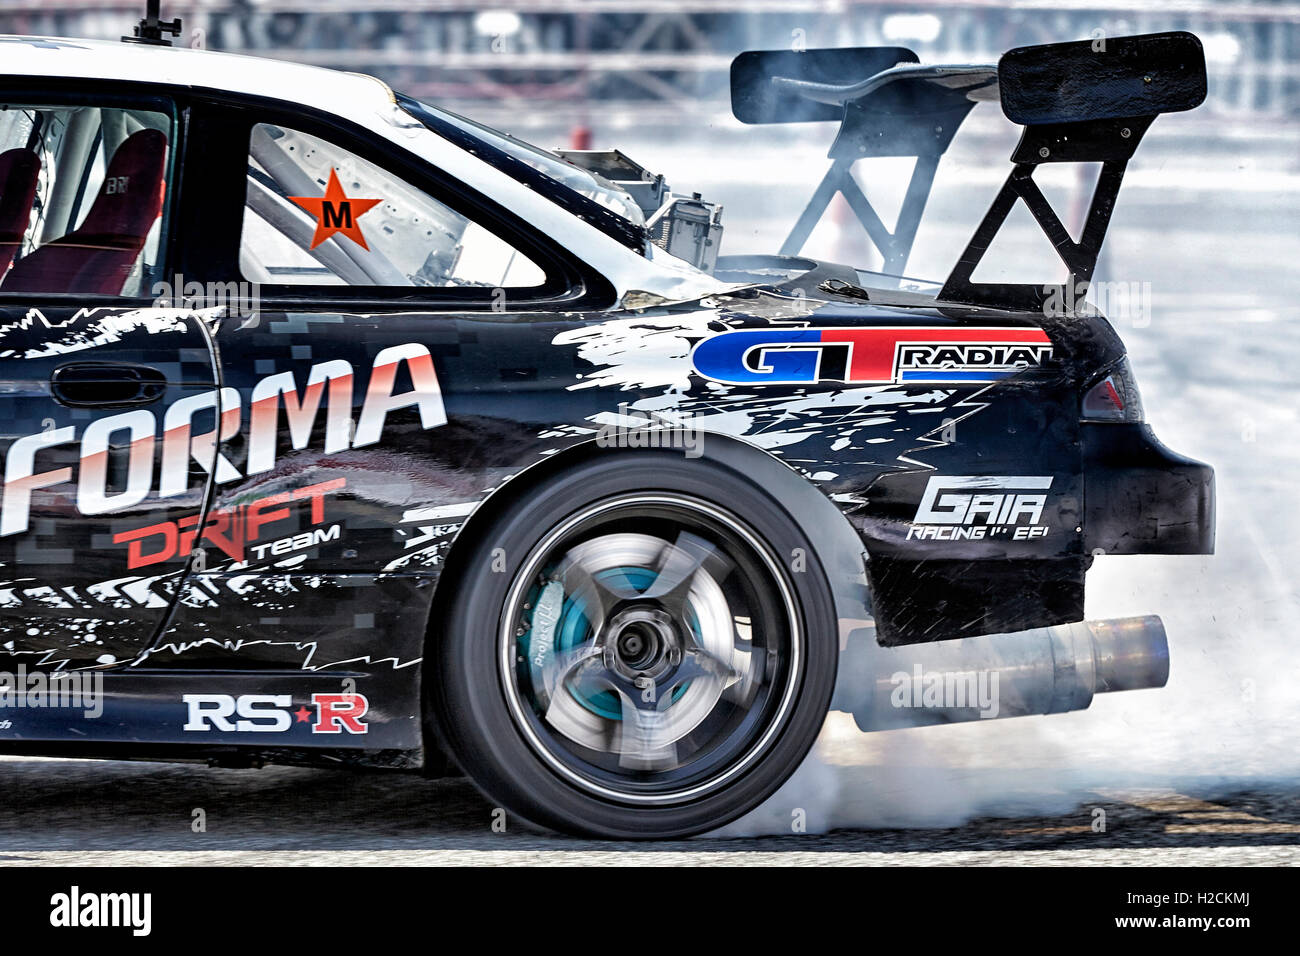 Car drifting auto racing event action with smoking tyres